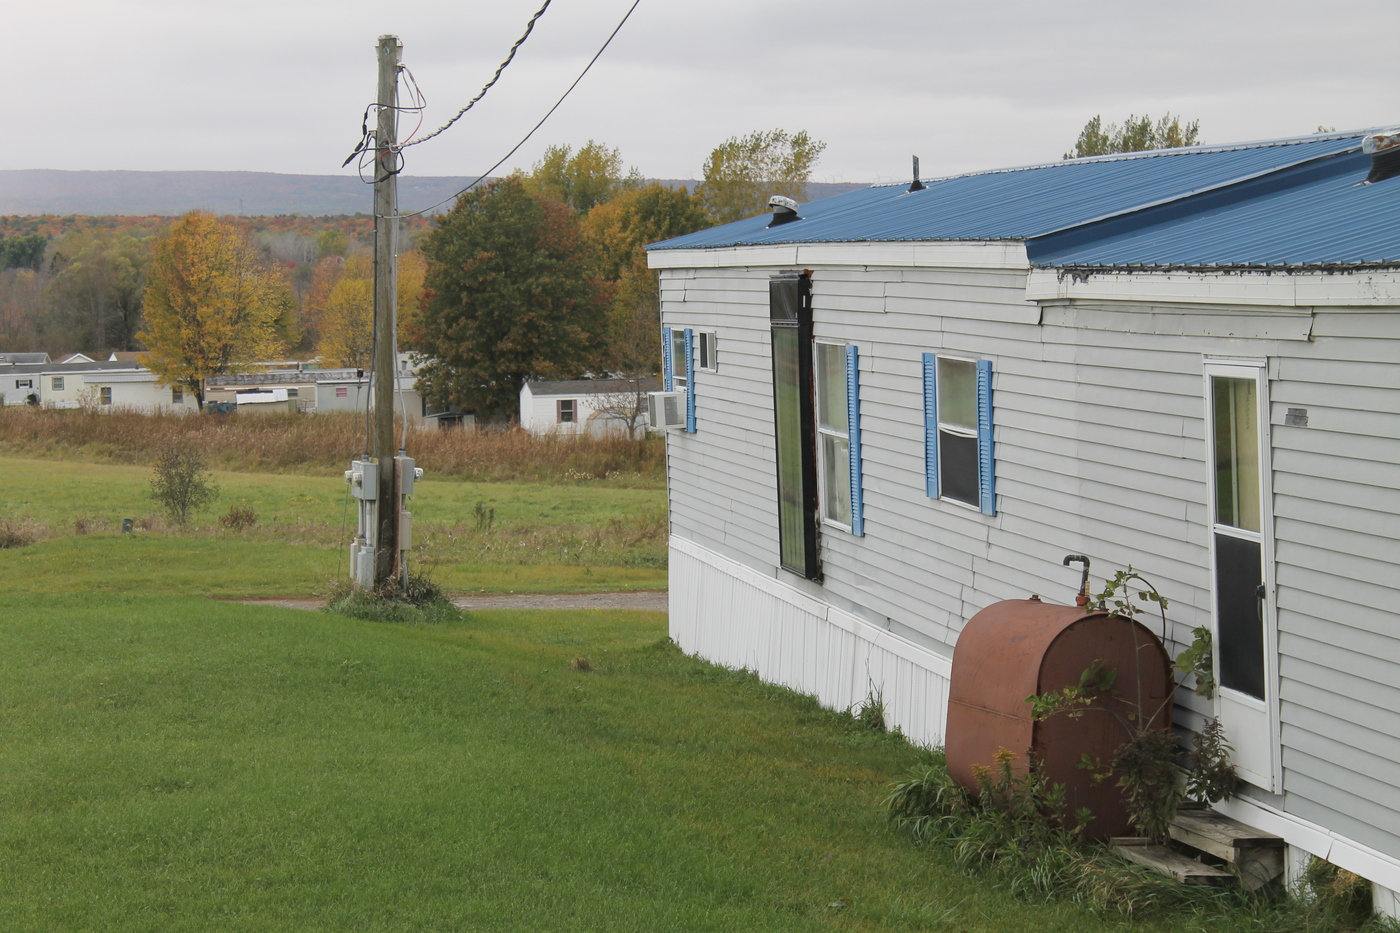 Country Sky Mobile Home Park In The Town Of Plattsburgh Photo Zach Hirsch